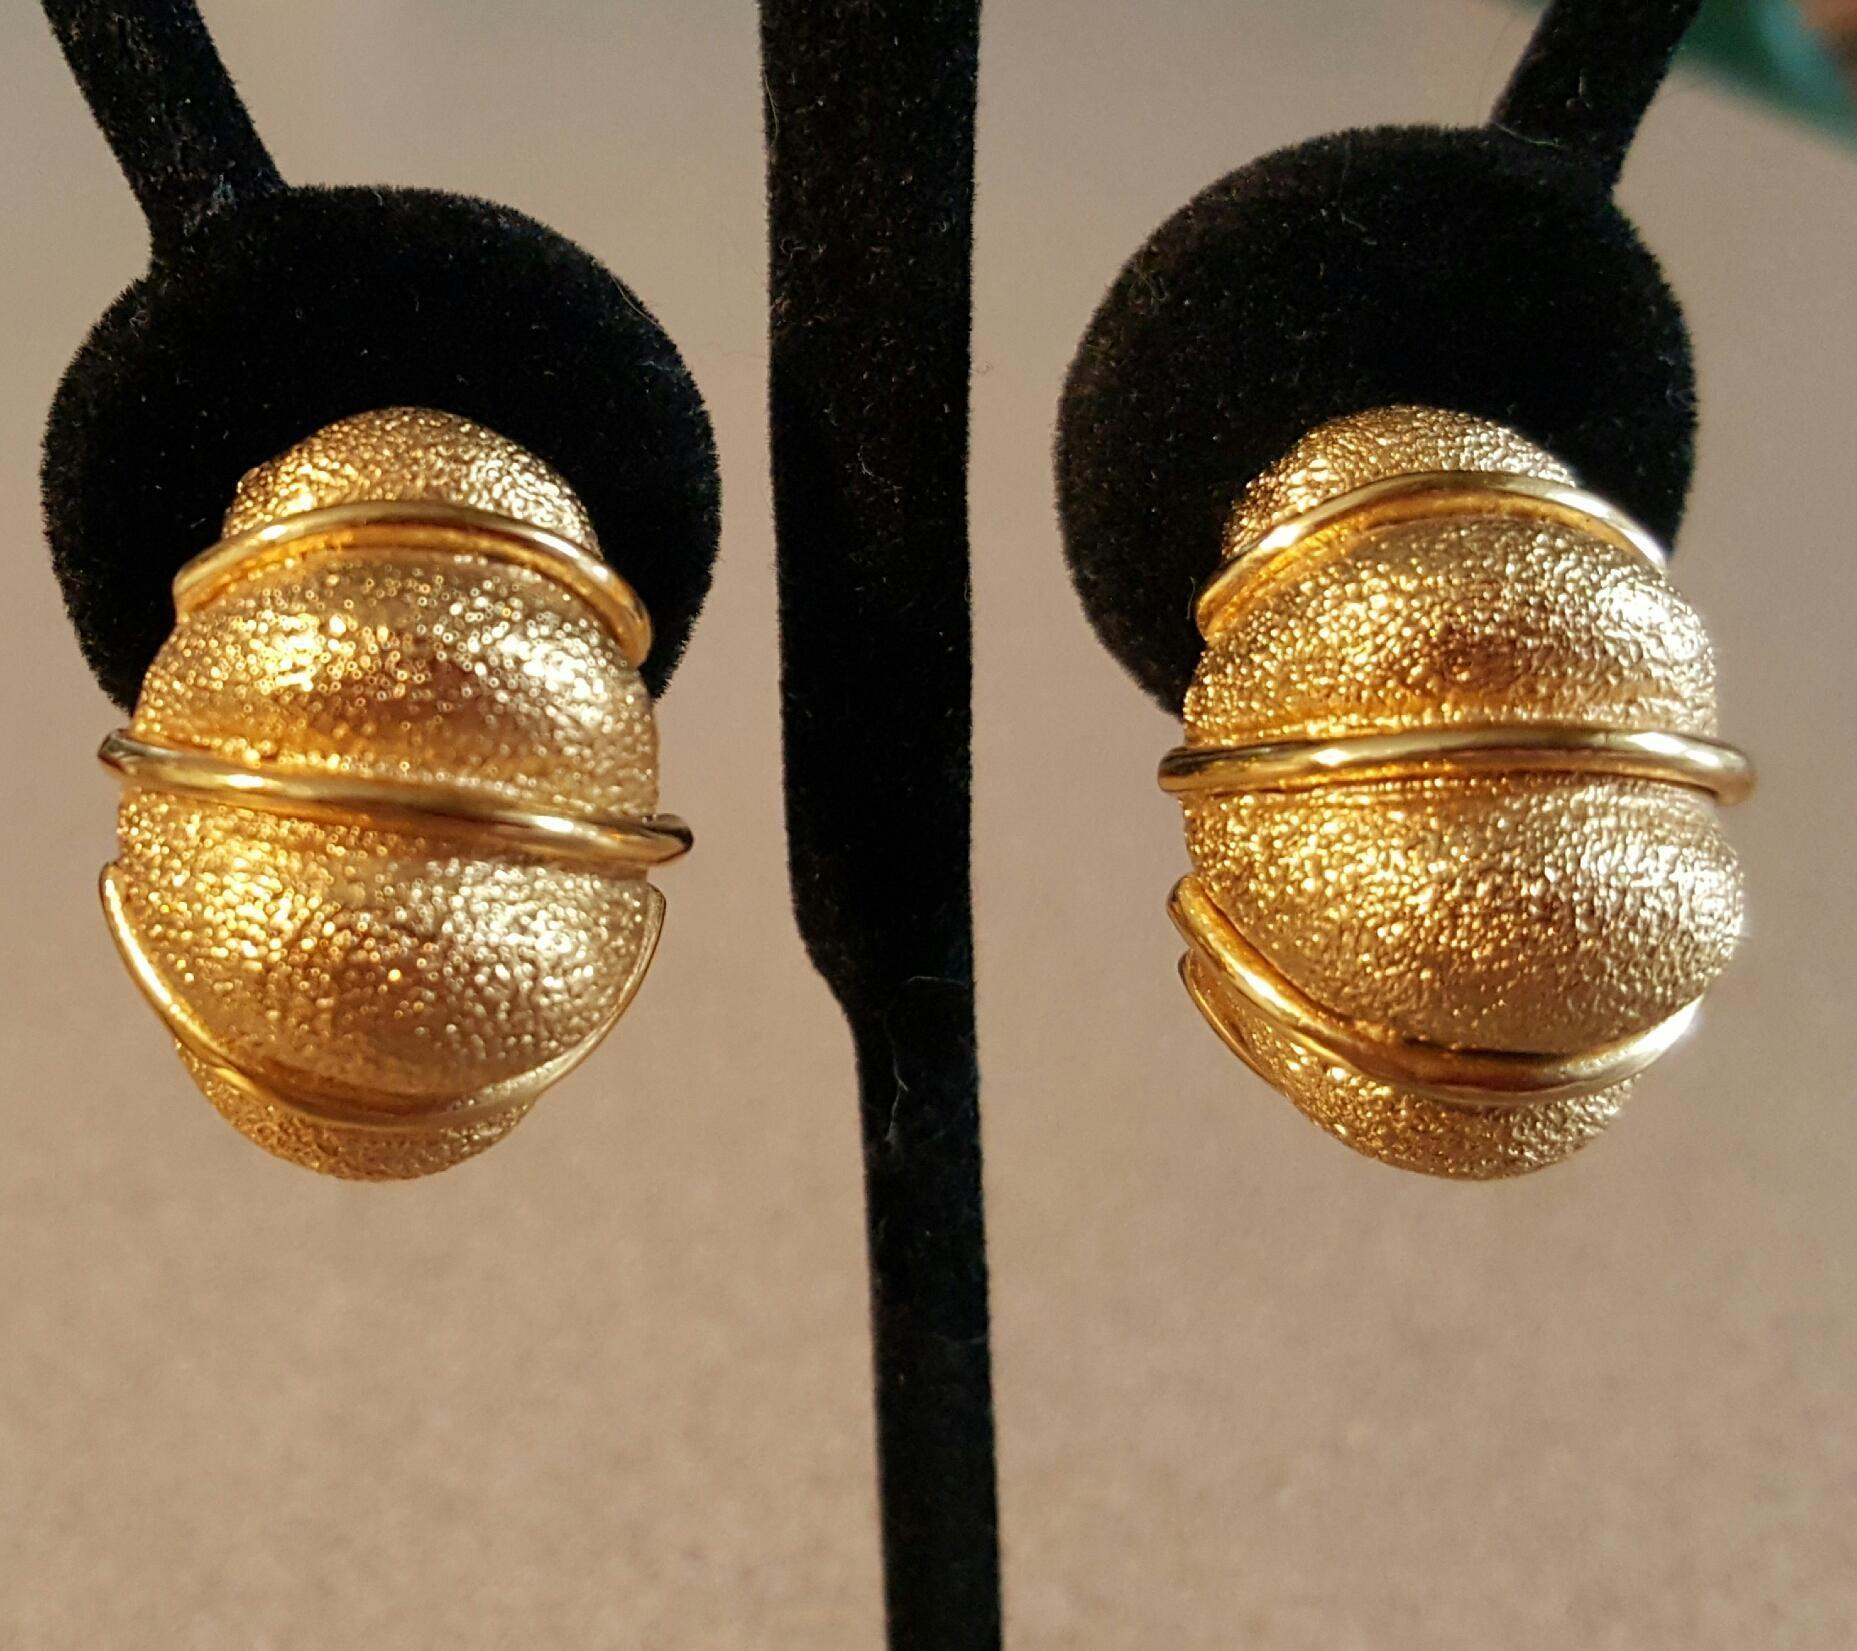 Vintage St. John Golden Shrimp Clip Earrings  - 21.8 grams